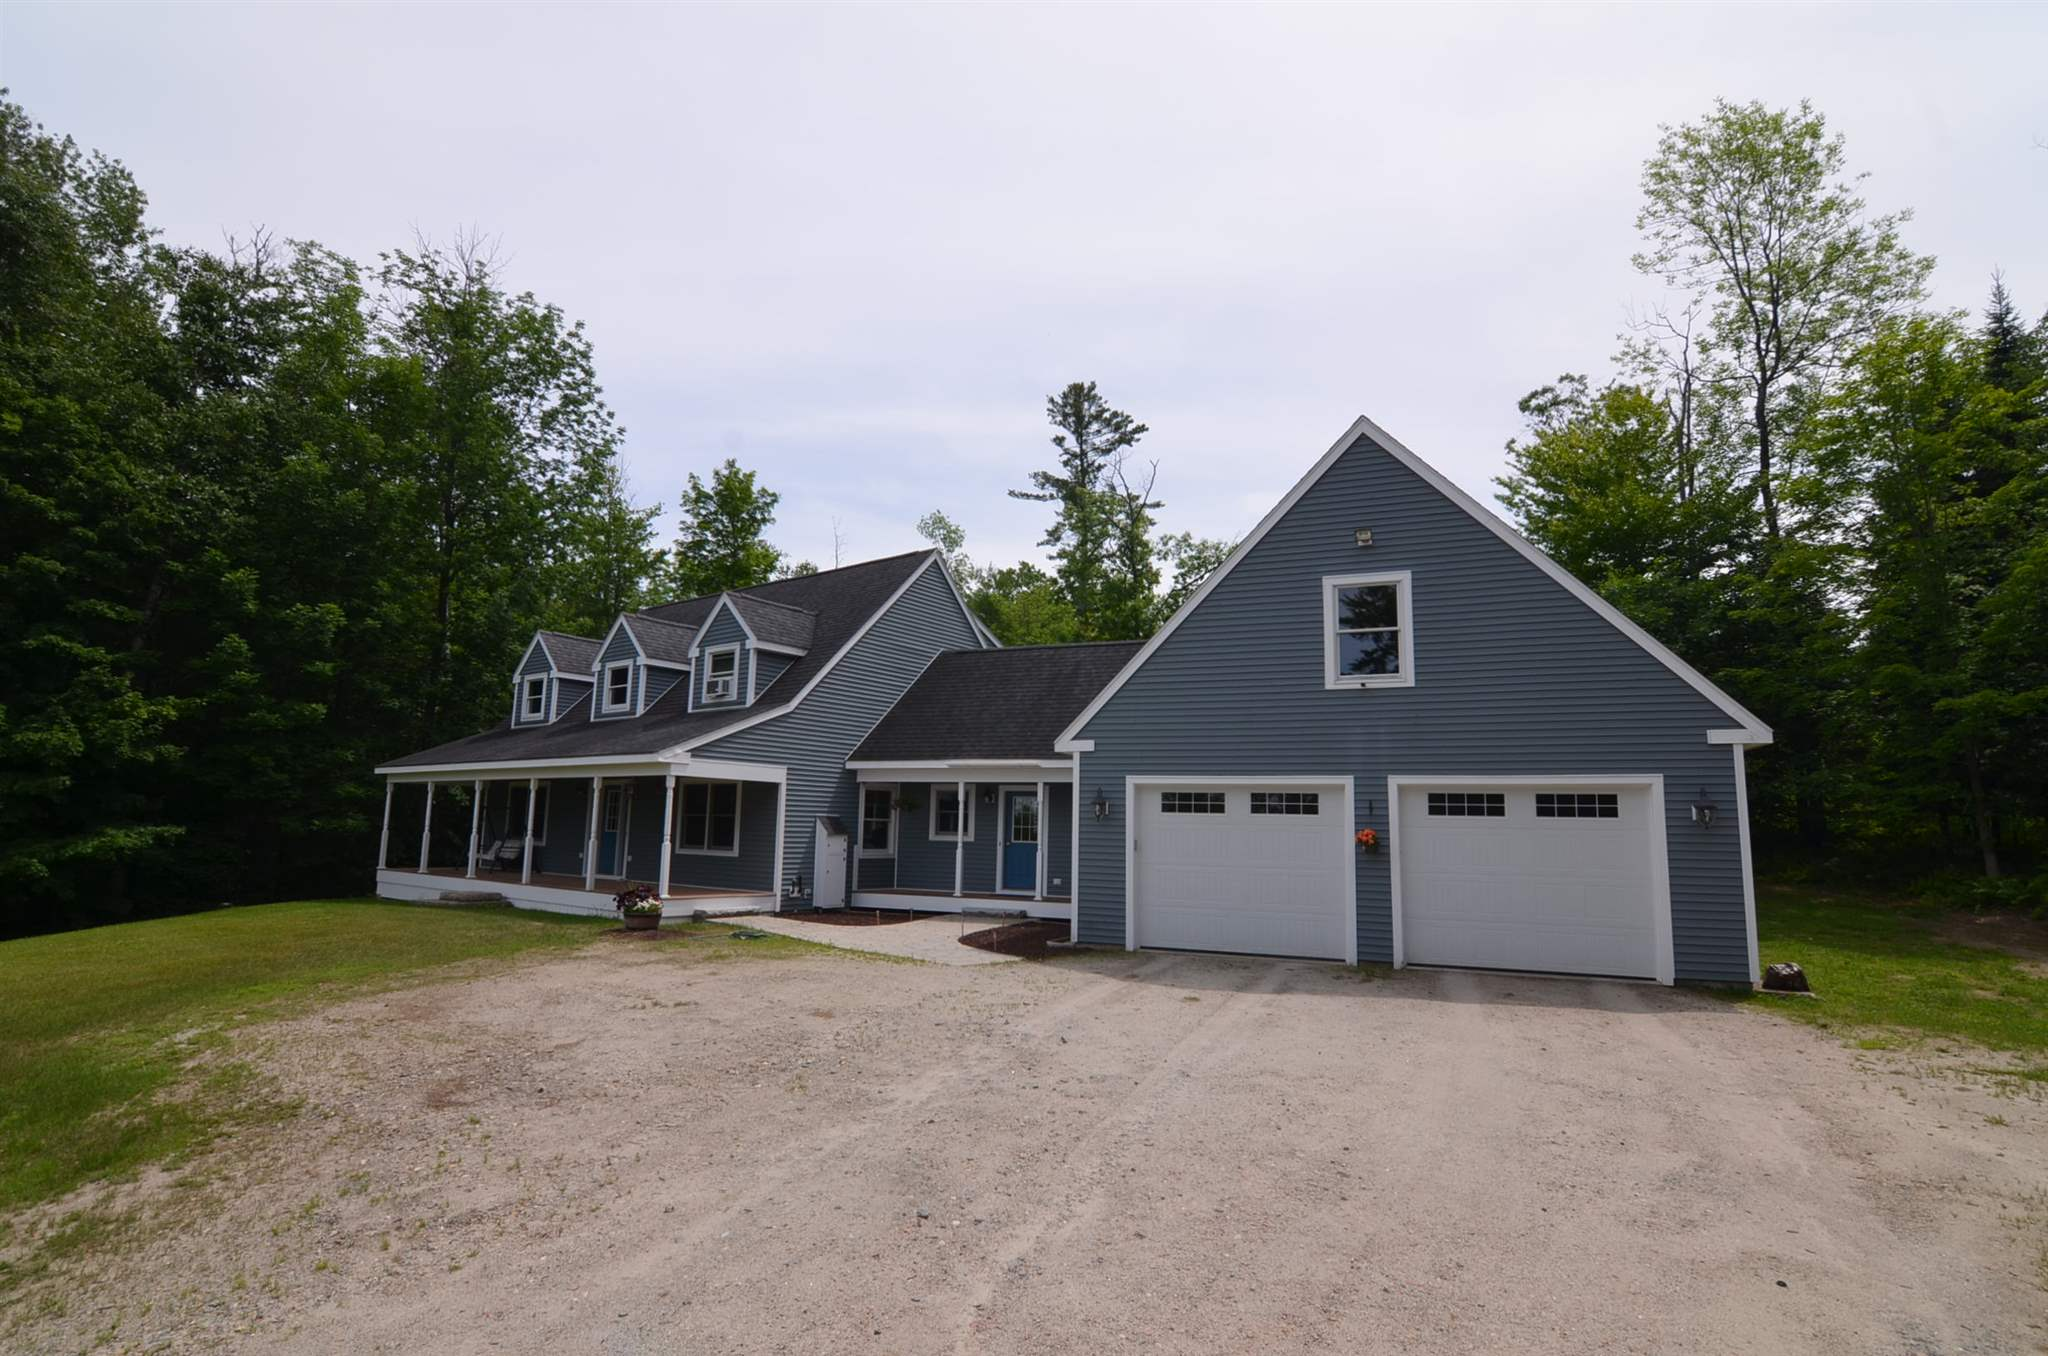 image of Newport NH Home | sq.ft. 3444